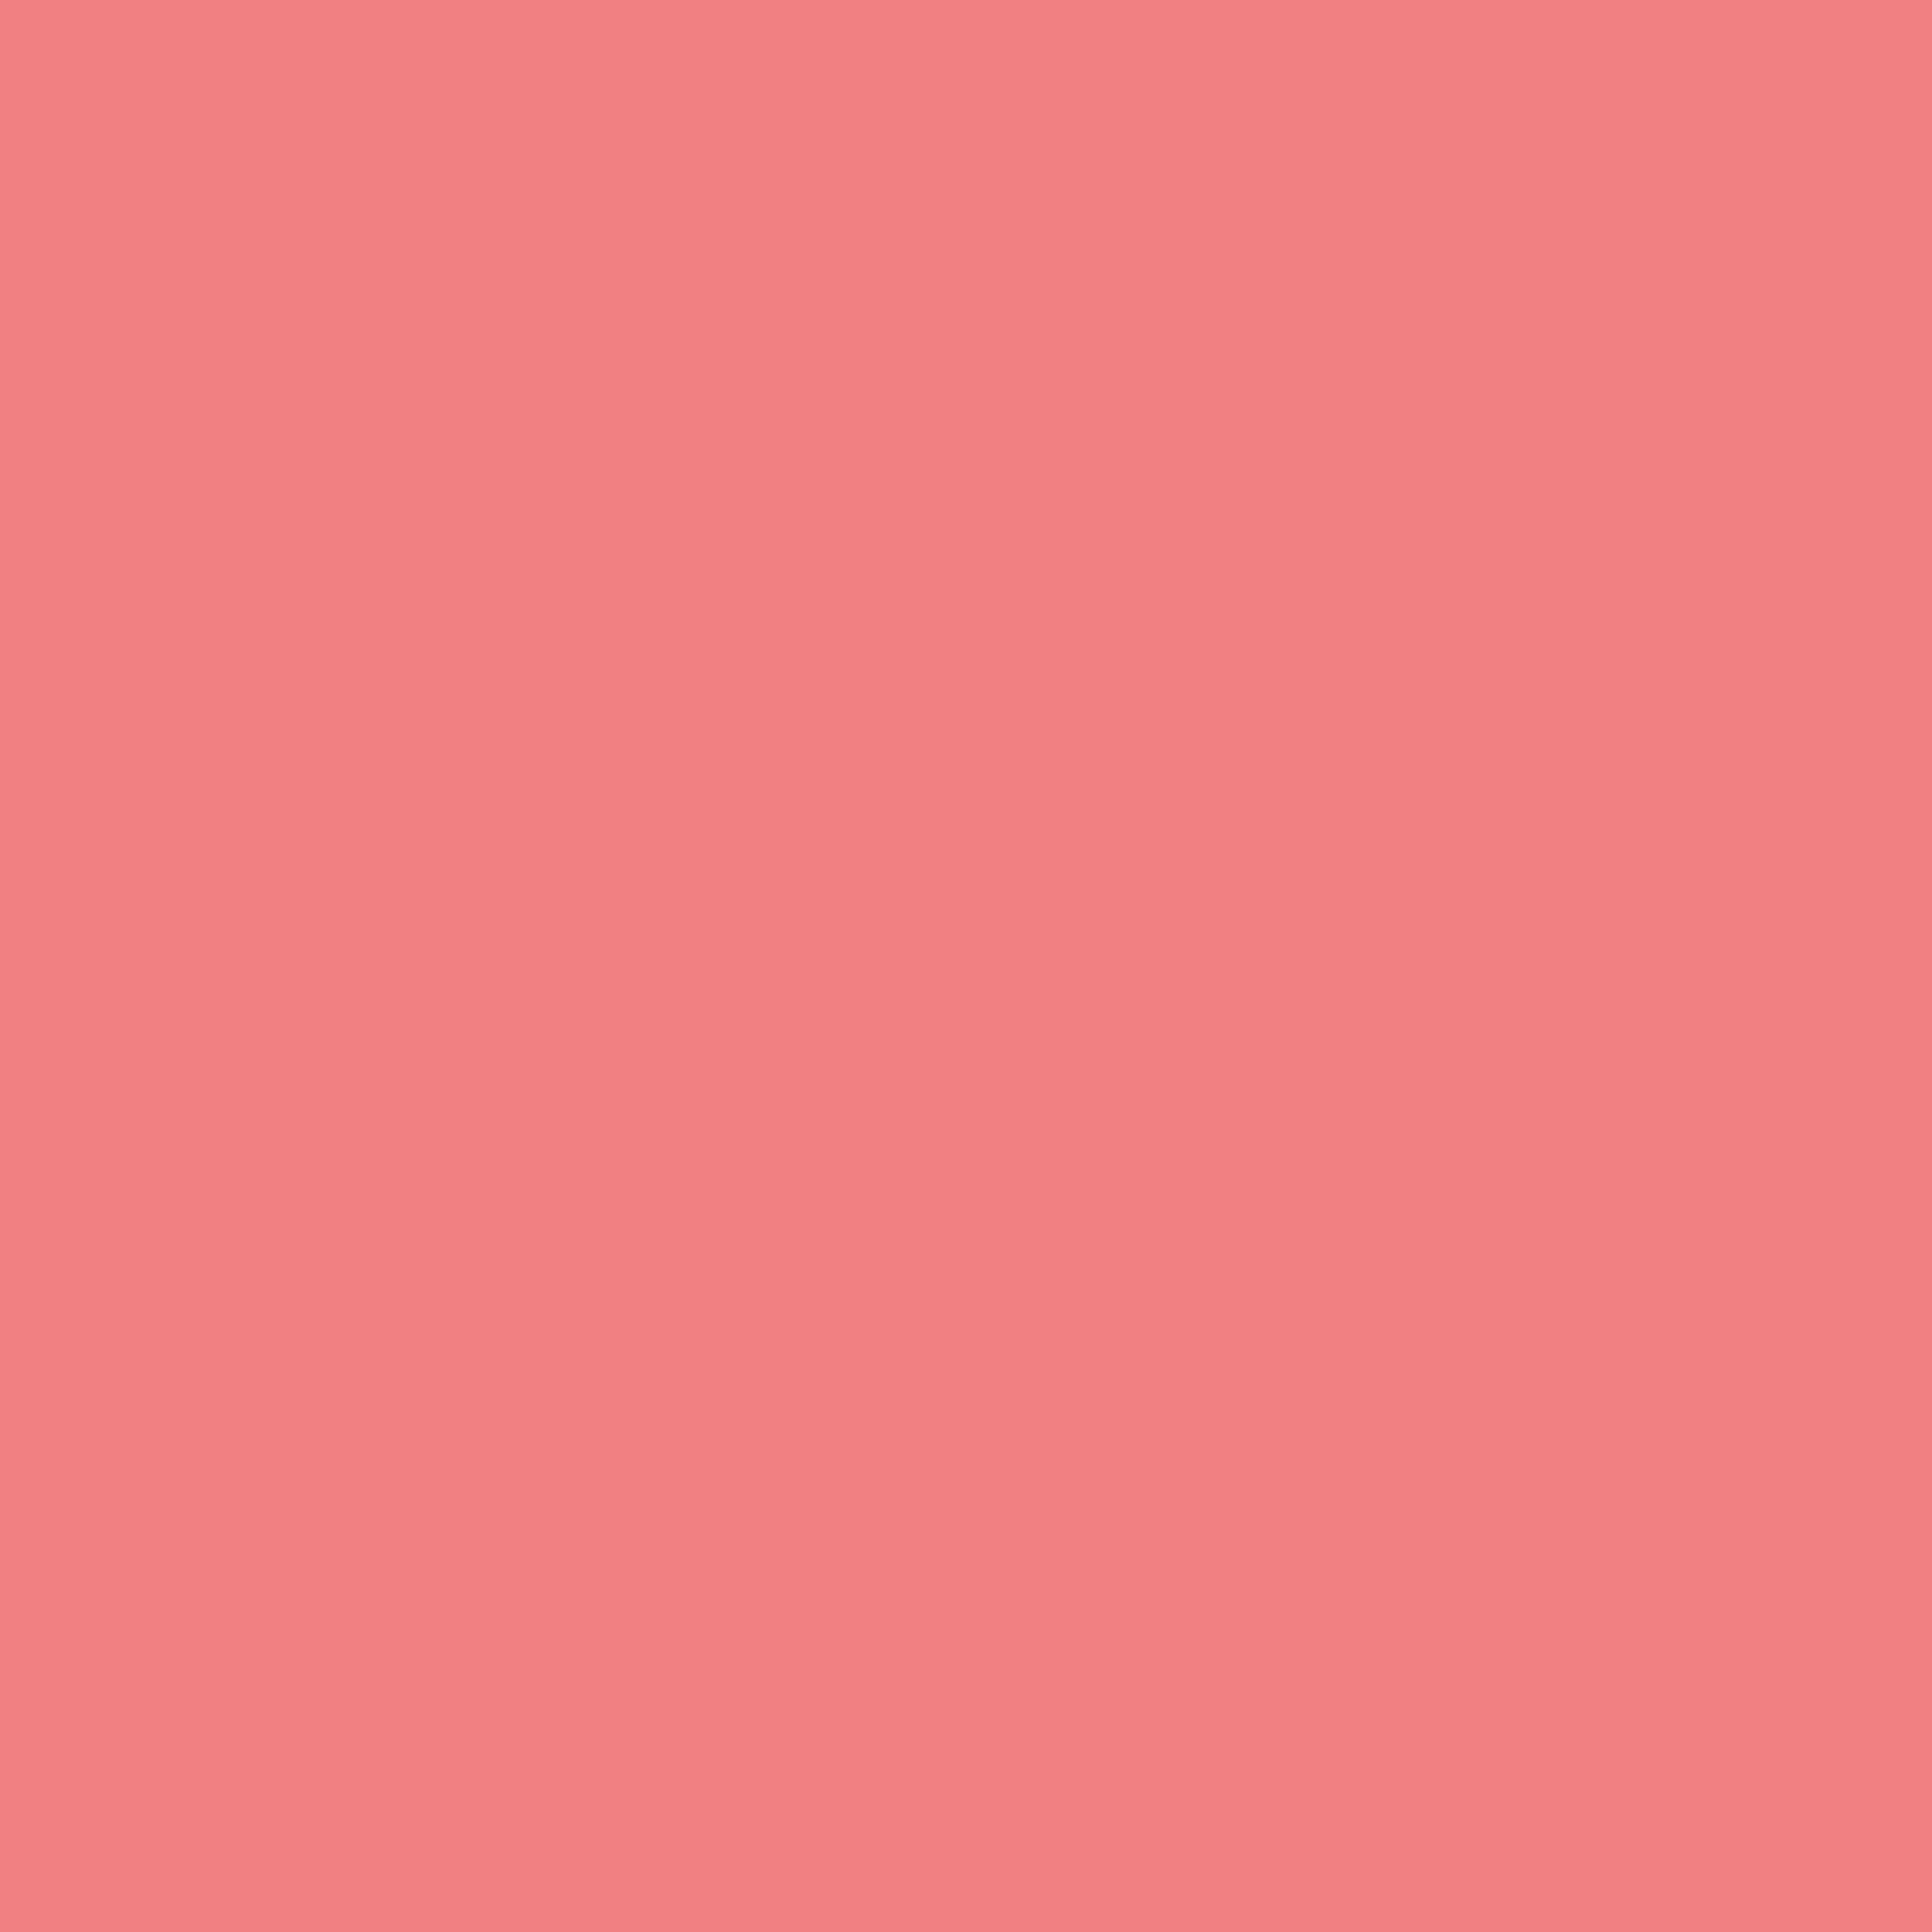 3600x3600 Light Coral Solid Color Background